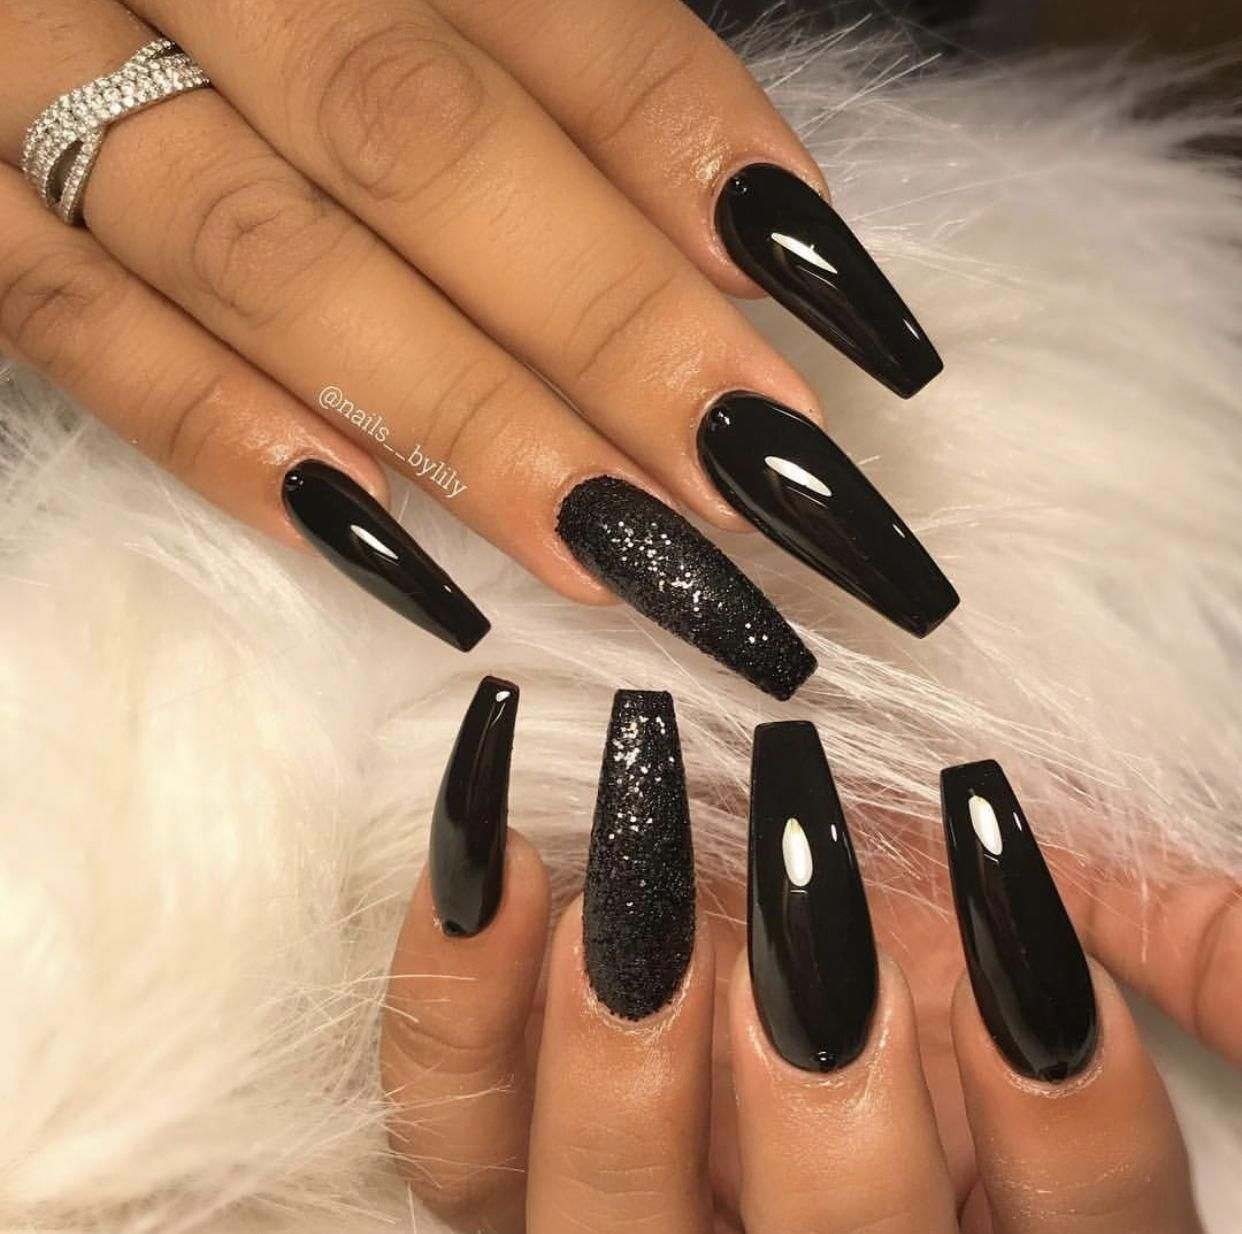 Pin By Egypt On Nagels Cute Acrylic Nail Designs Black Acrylic Nails Acrylic Nails